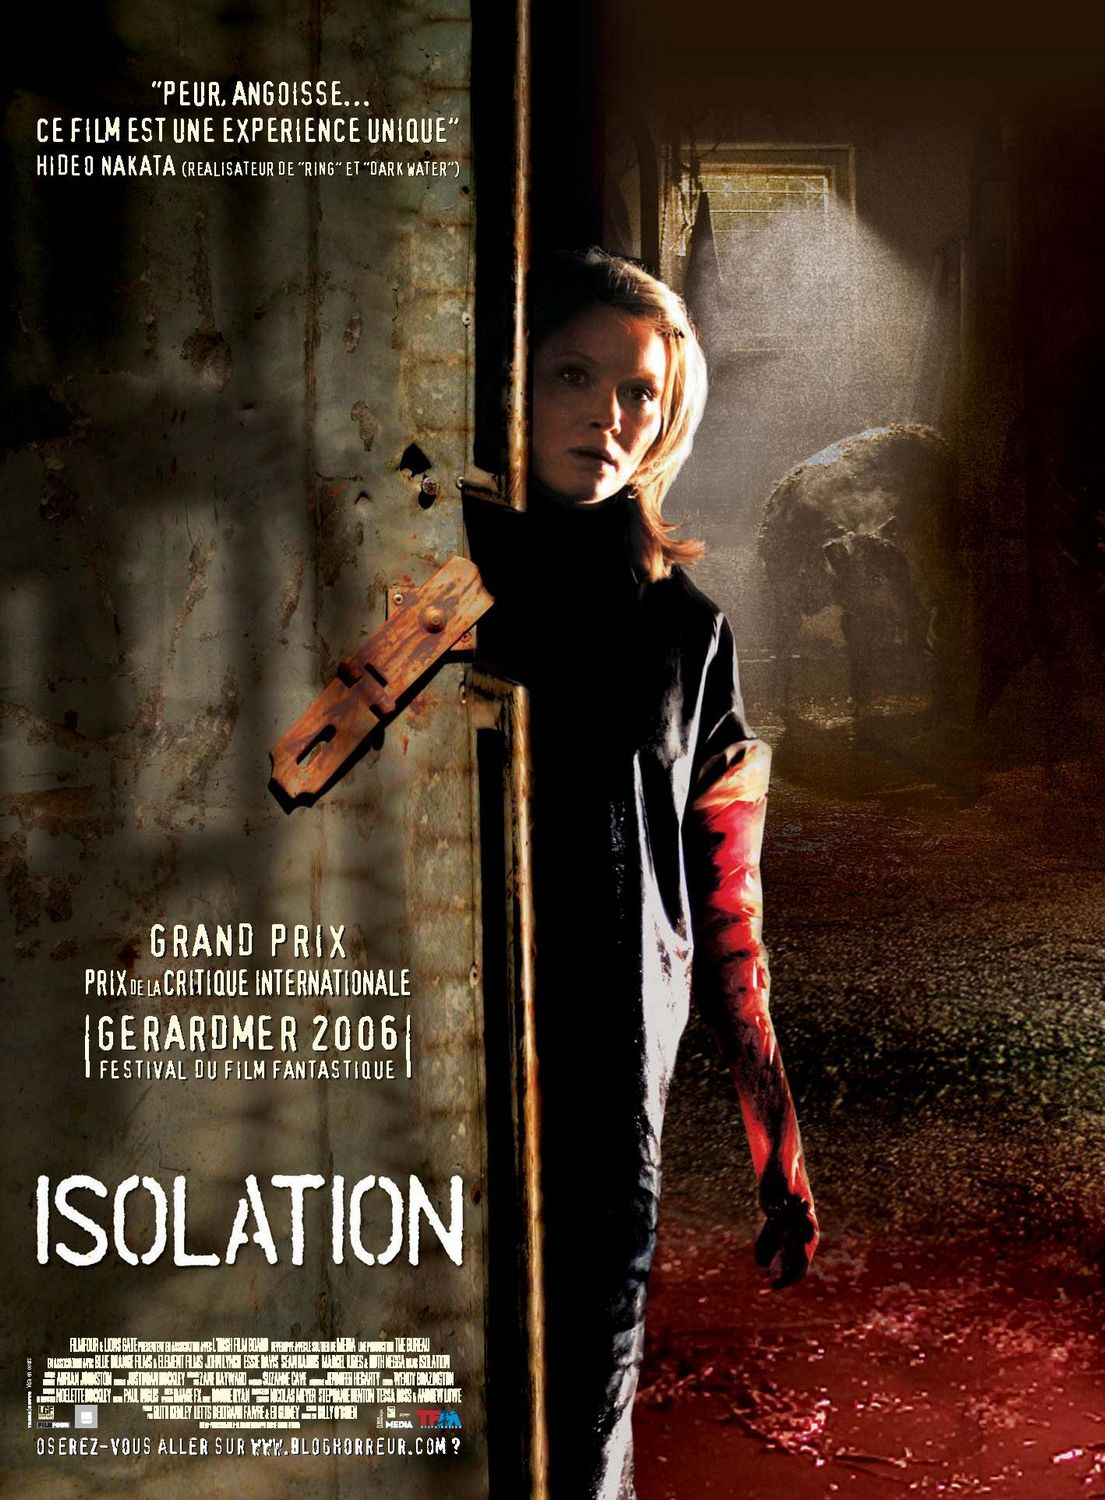 Изоляция / Isolation (2005/DVDRip) 3gp/mp4/avi.